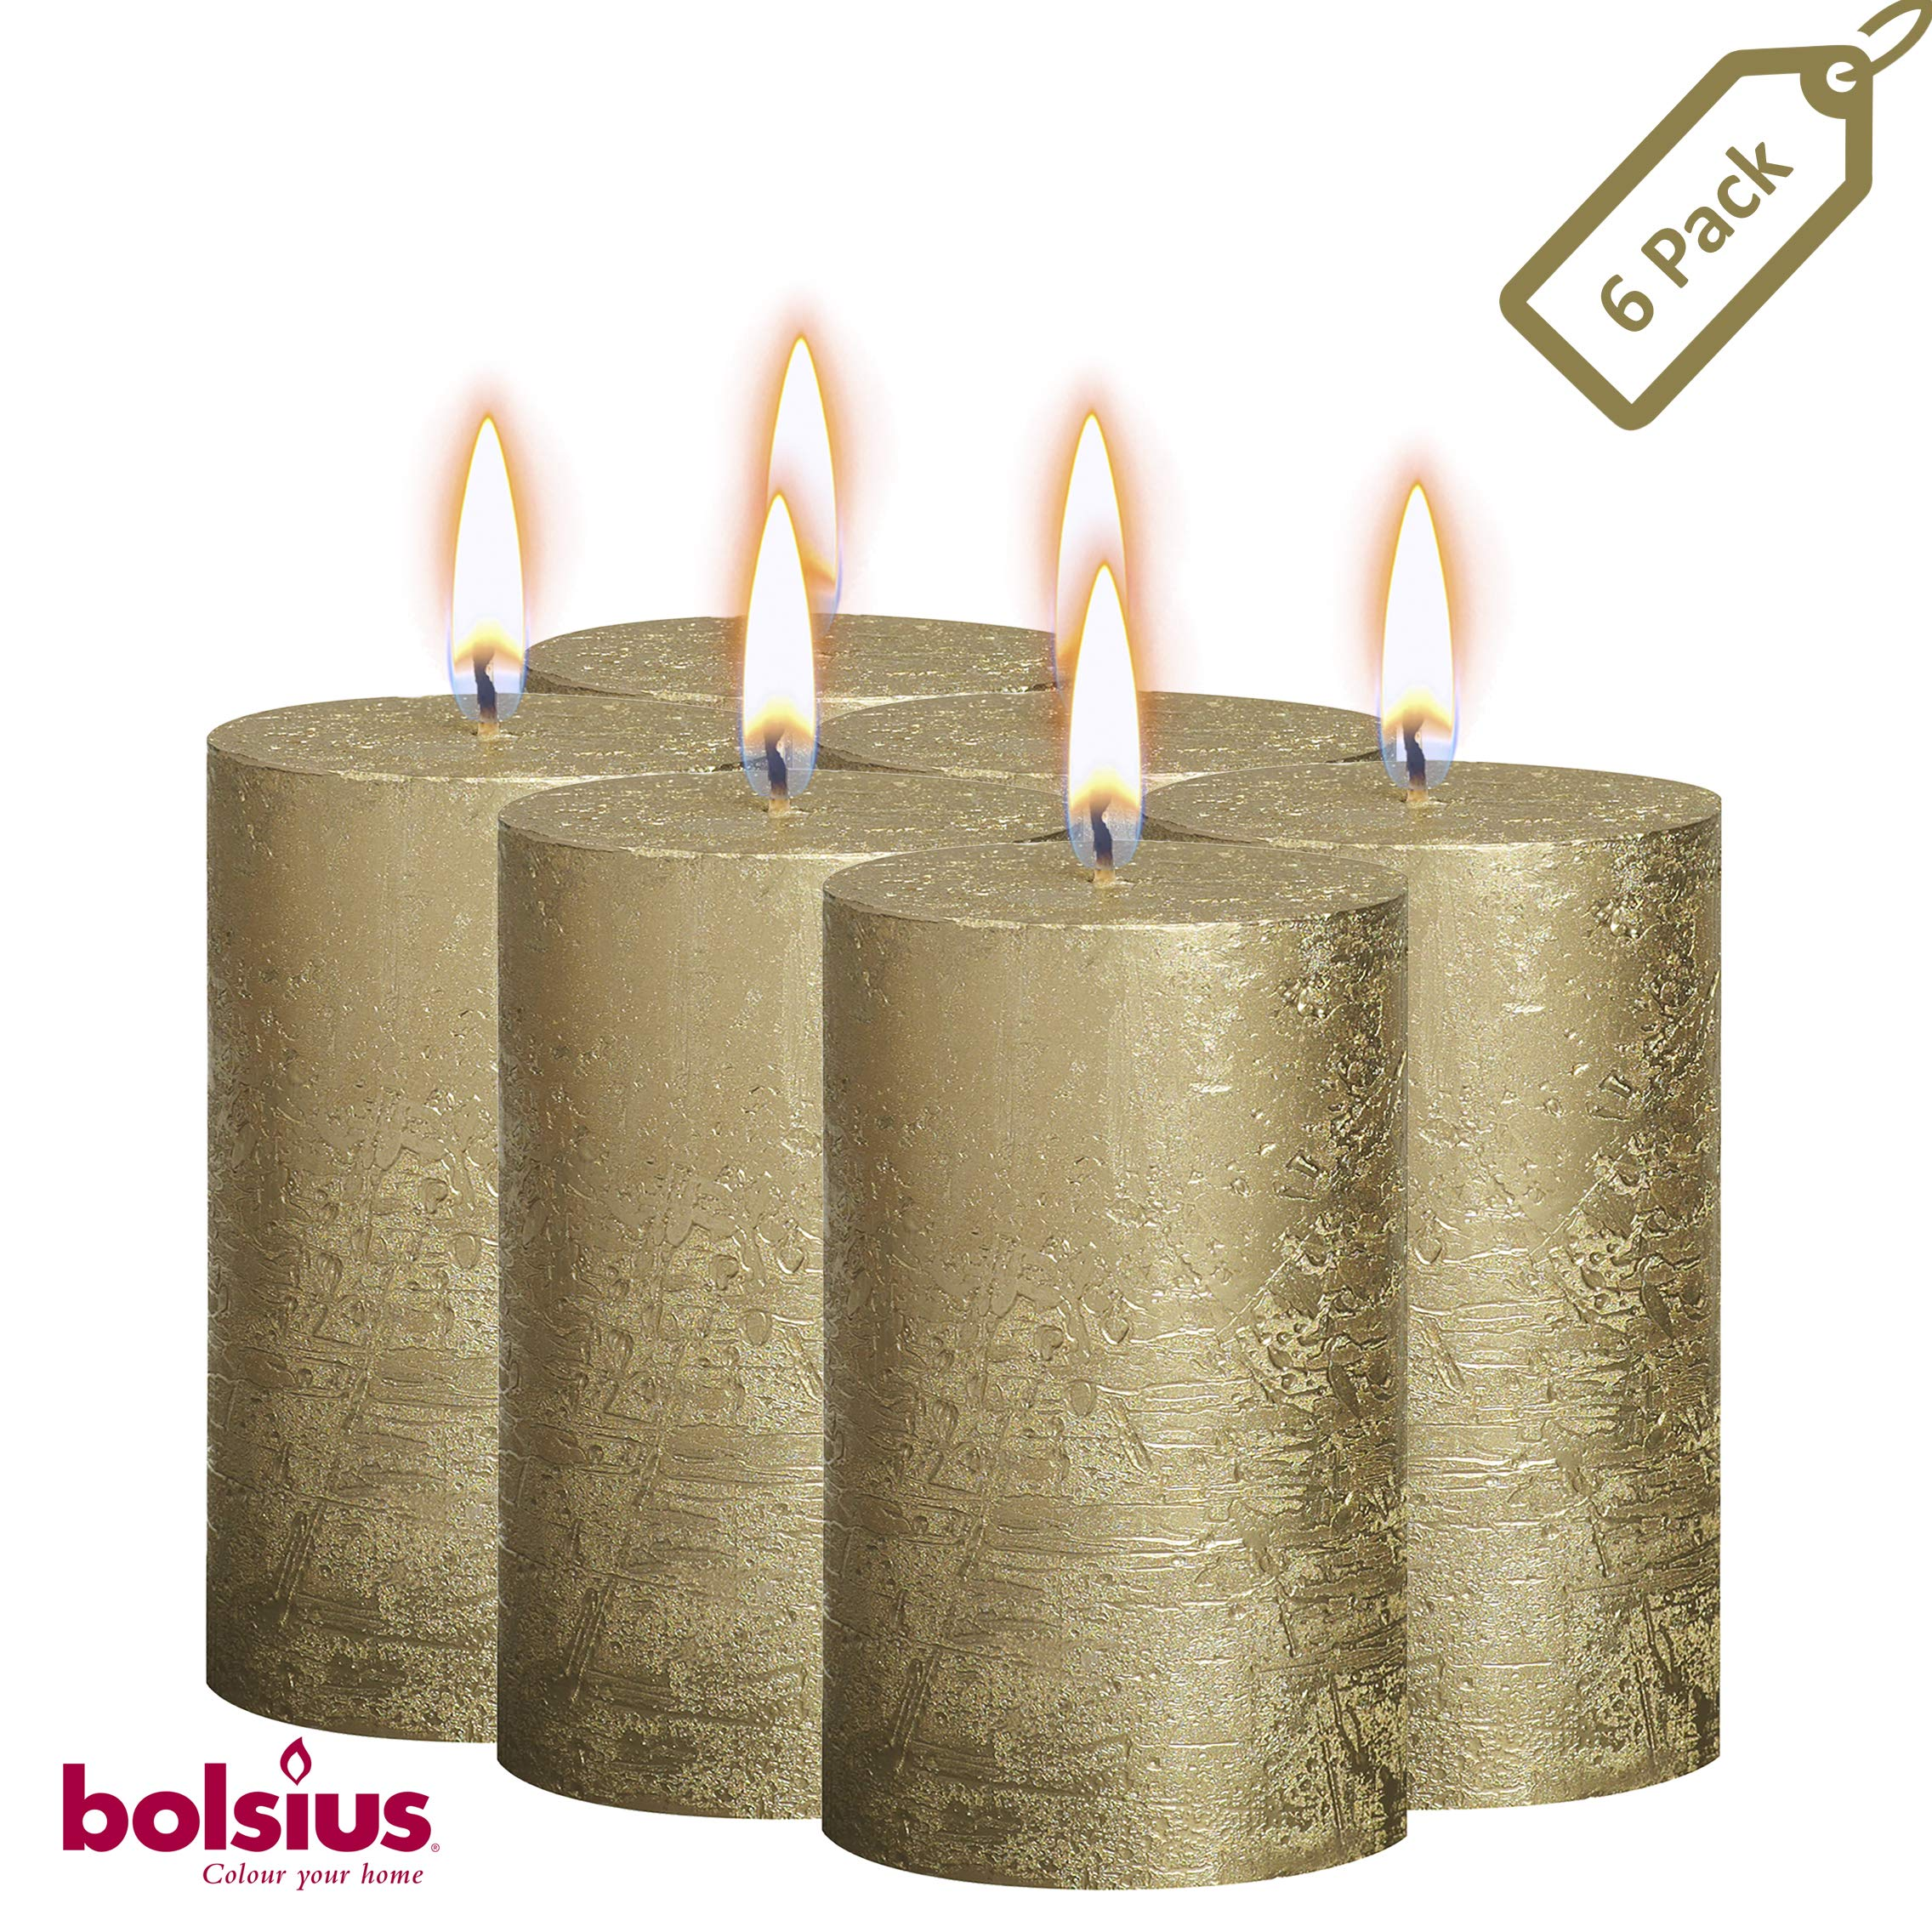 BOLSIUS Rustic Full Metallic Gold Candles - Set of 6 Unscented Pillar Candles - Gold Candles with a Full Metallic Coat - Slow Burning - Perfect Décor Candle - 130/68m 5 X 2.75 Inches